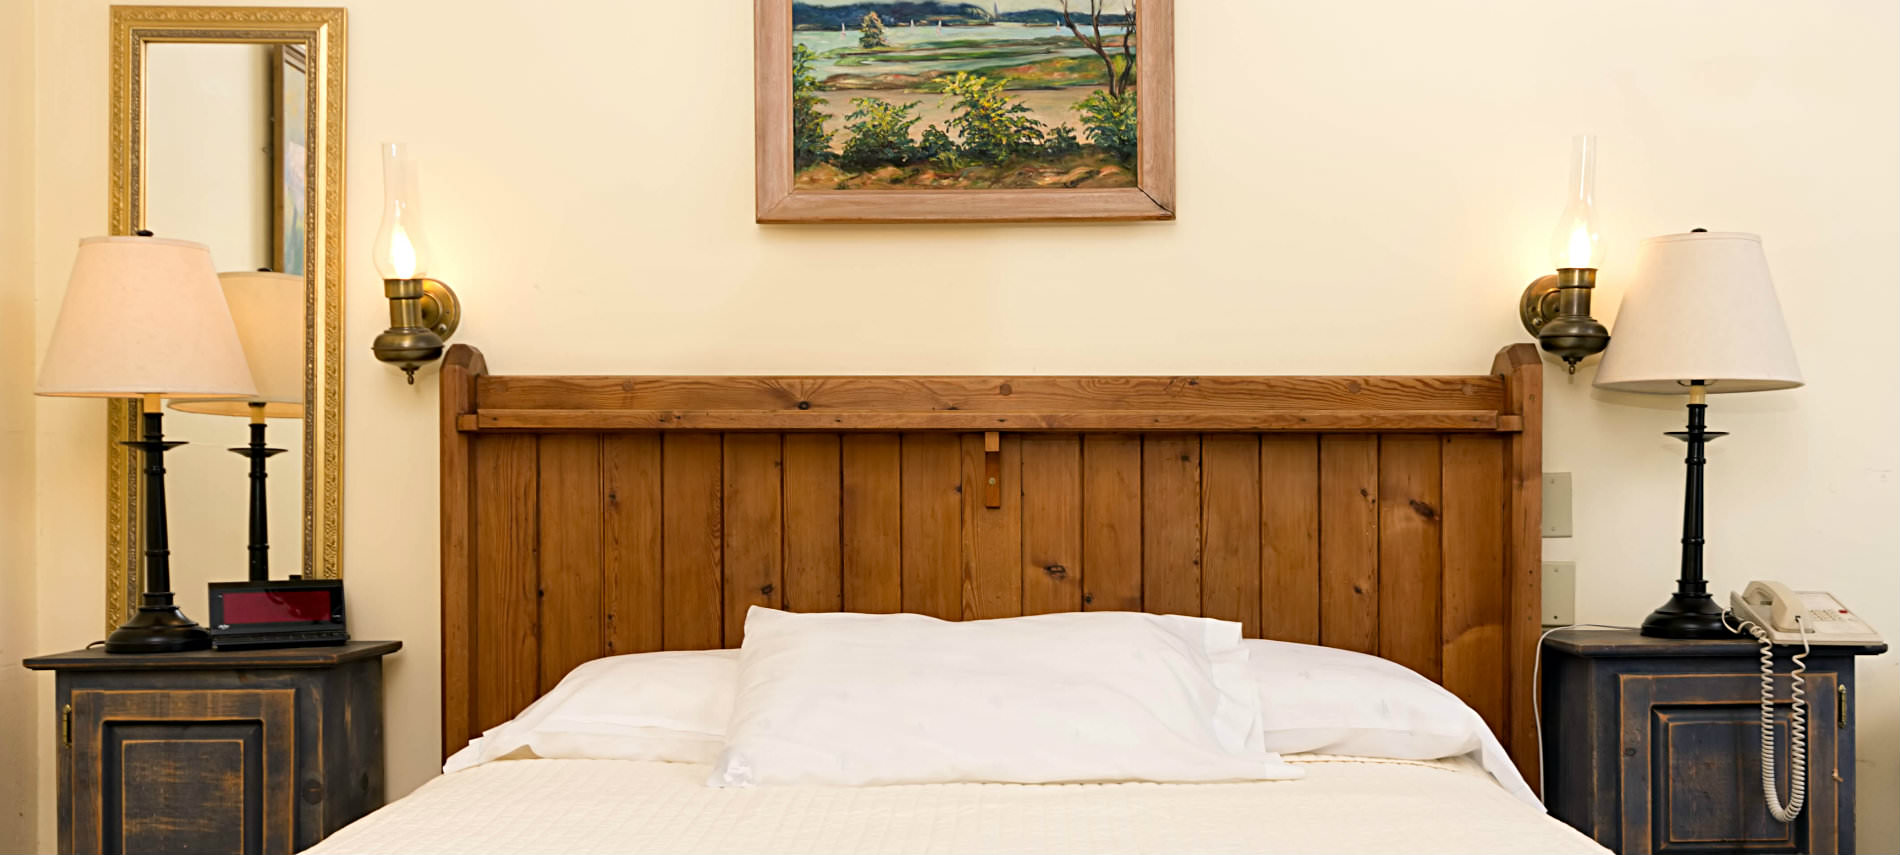 A whte bed with a pillow and a brown wooden headboard sits between two small tables with lamps